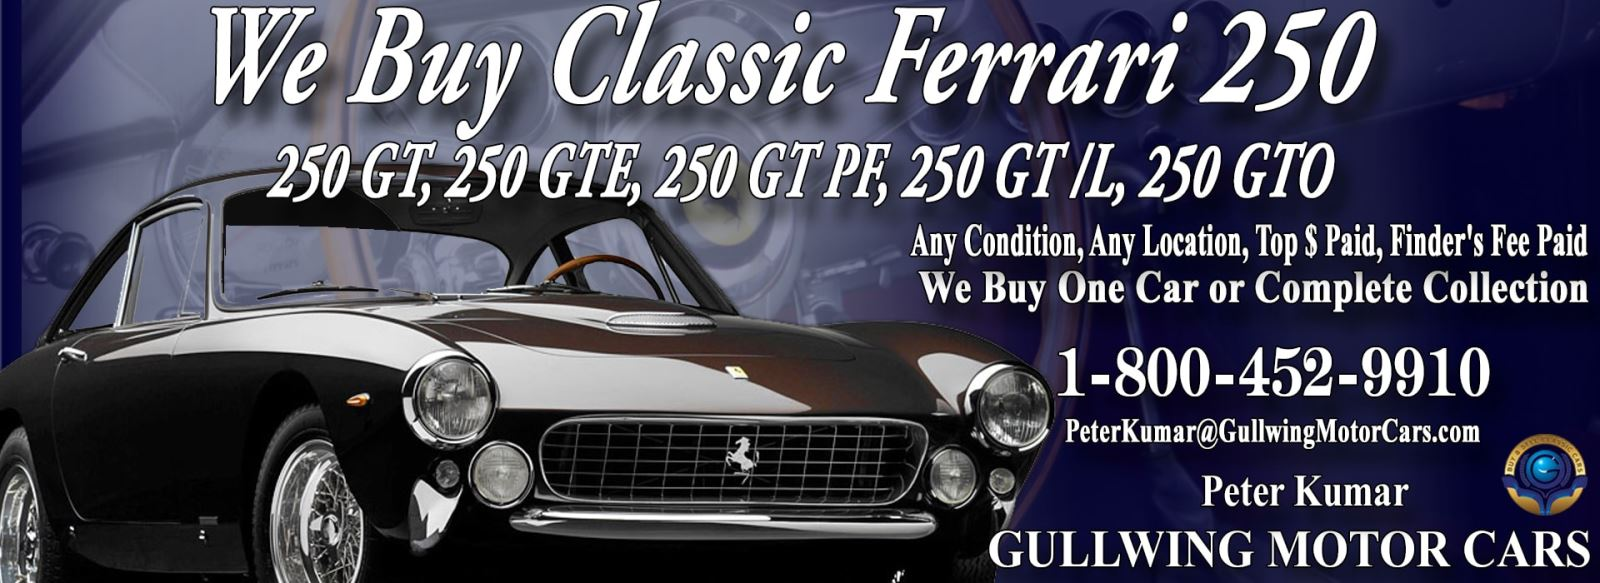 Classic Ferrari 250 for sale, we buy vintage Ferrari 250. Call Peter Kumar. Gullwing Motor